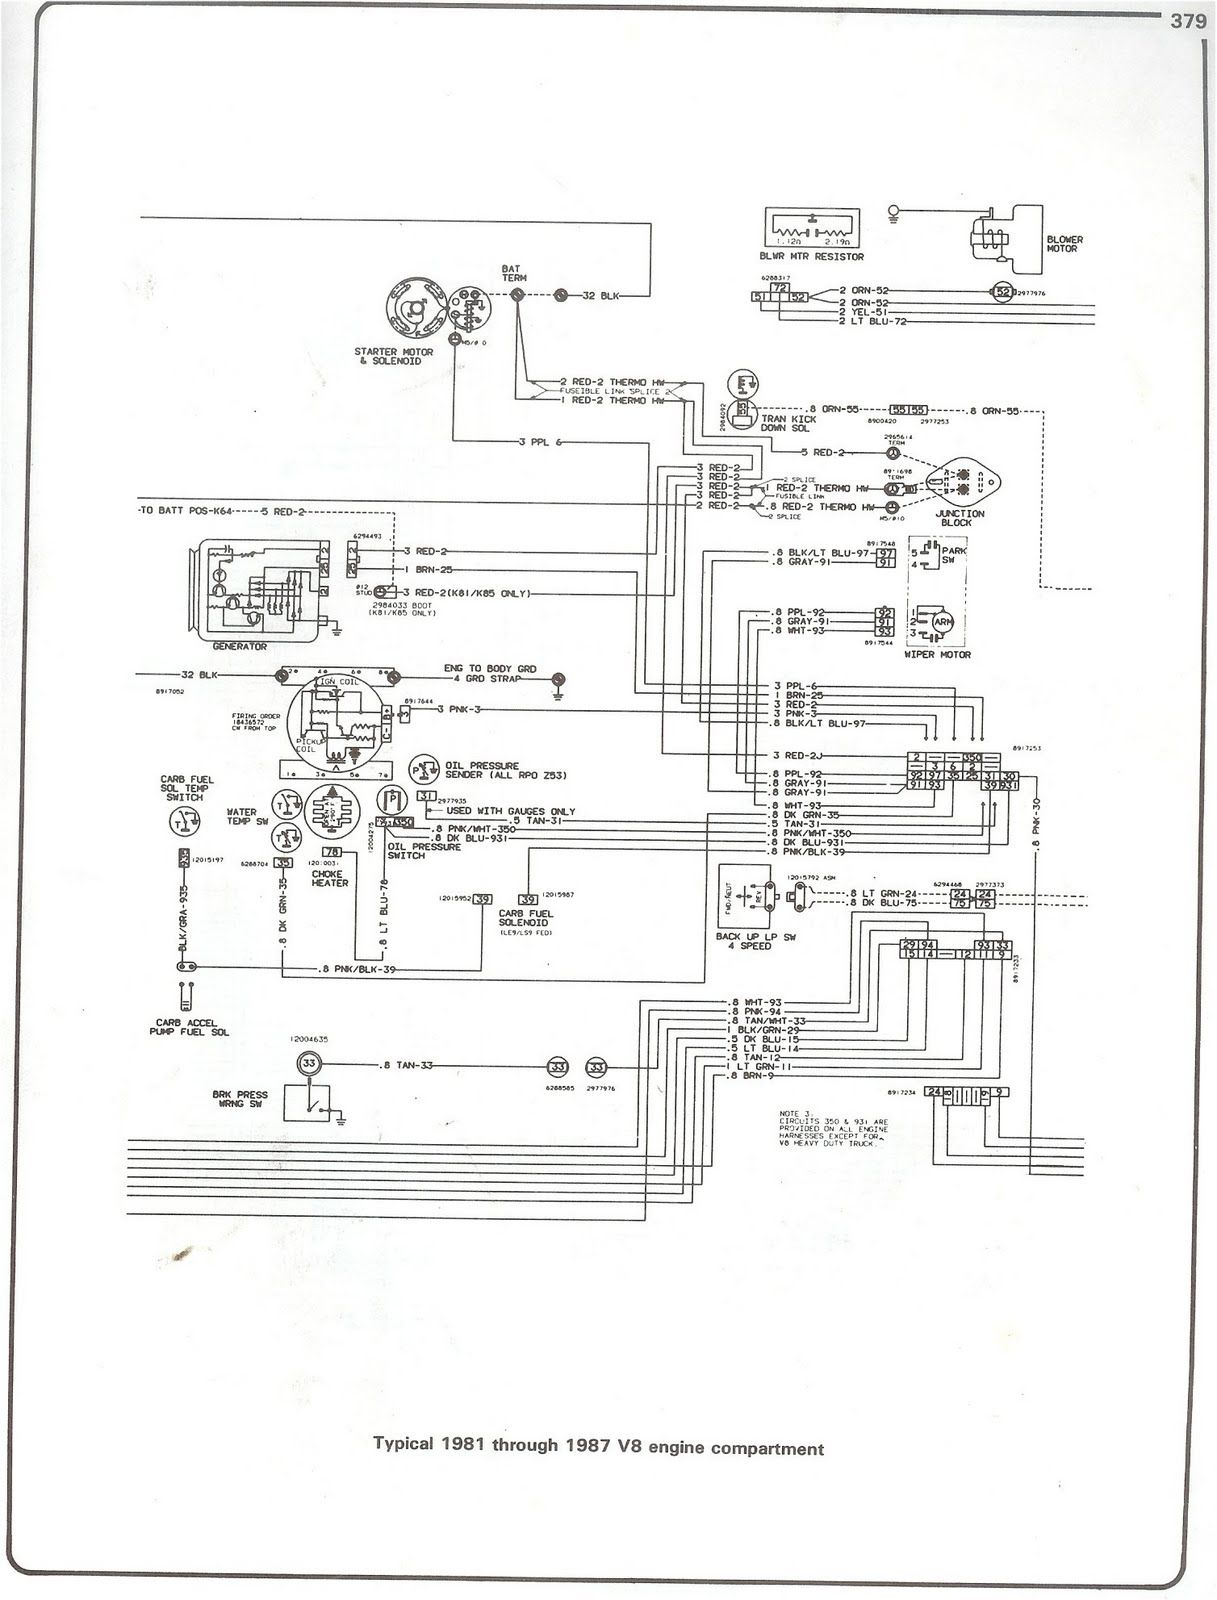 this is engine compartment wiring diagram for 1981 trough 85 Chevy Suburban Wiring Diagram